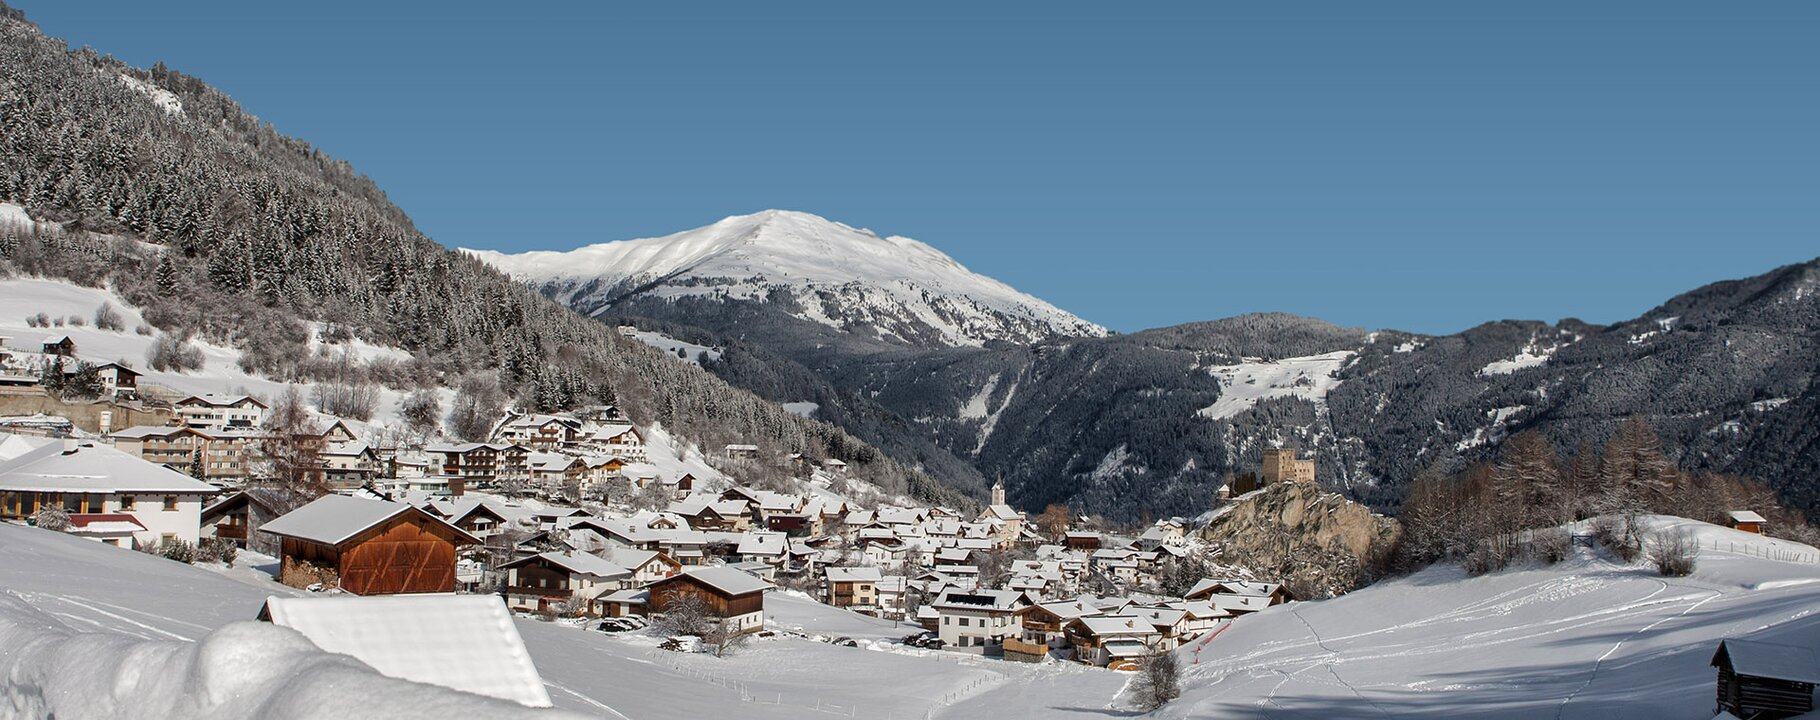 view of Ladis in winter | © Andreas Kirschner - www.webart.at